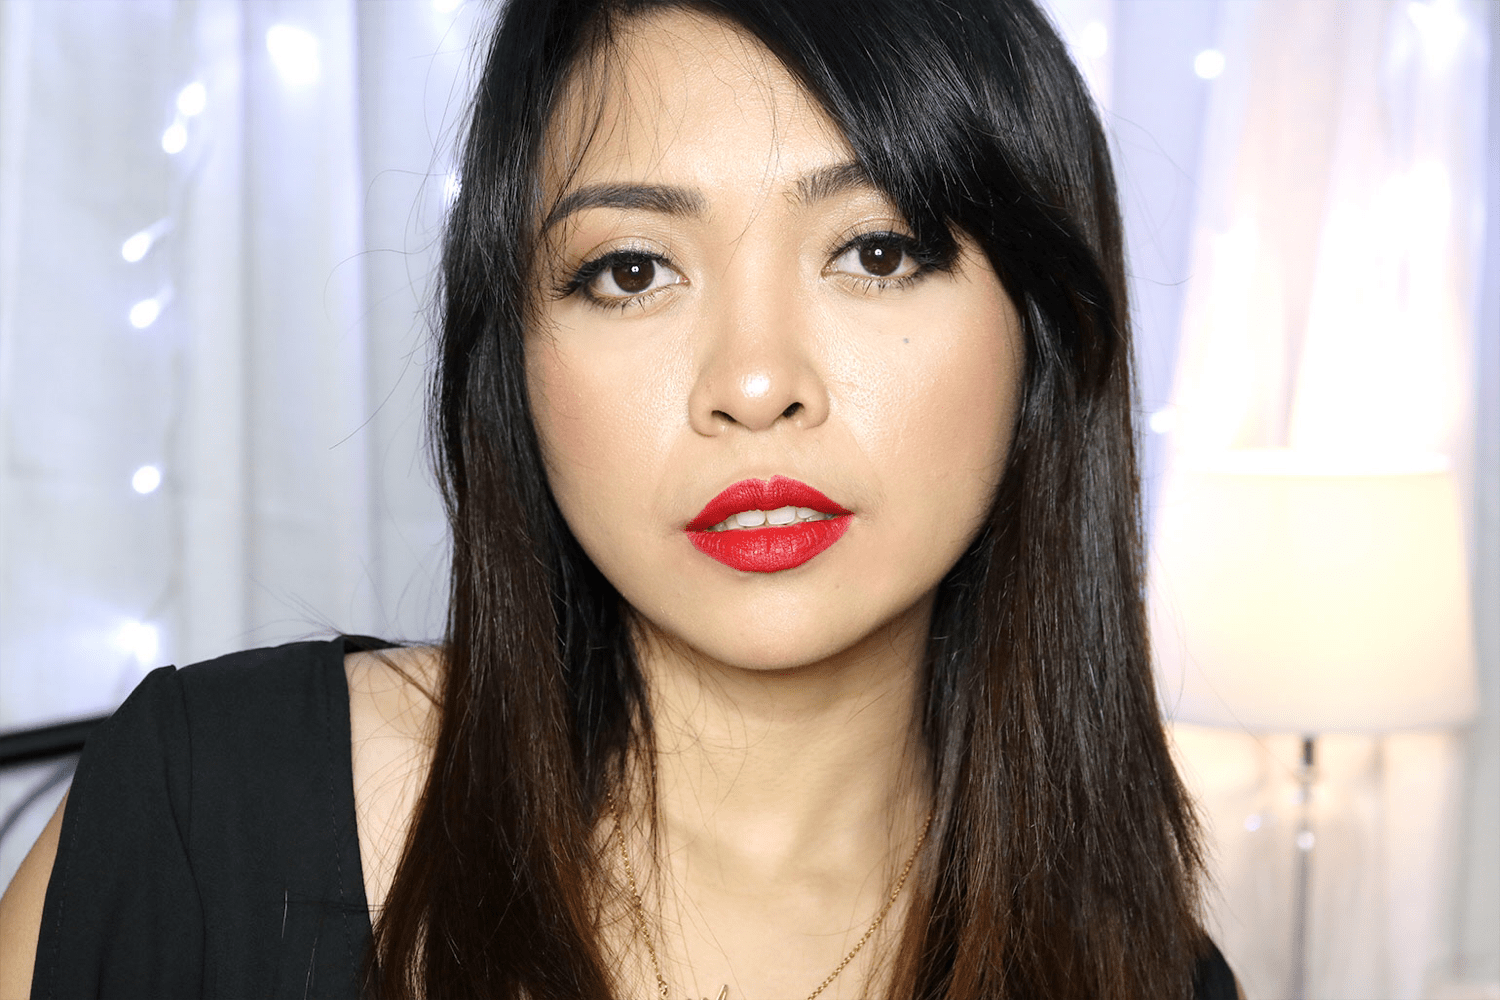 11 Maybelline Loaded Bolds Mattes Review Swatches Photos - Smoking Red - She Sings Beauty by Gen-zel